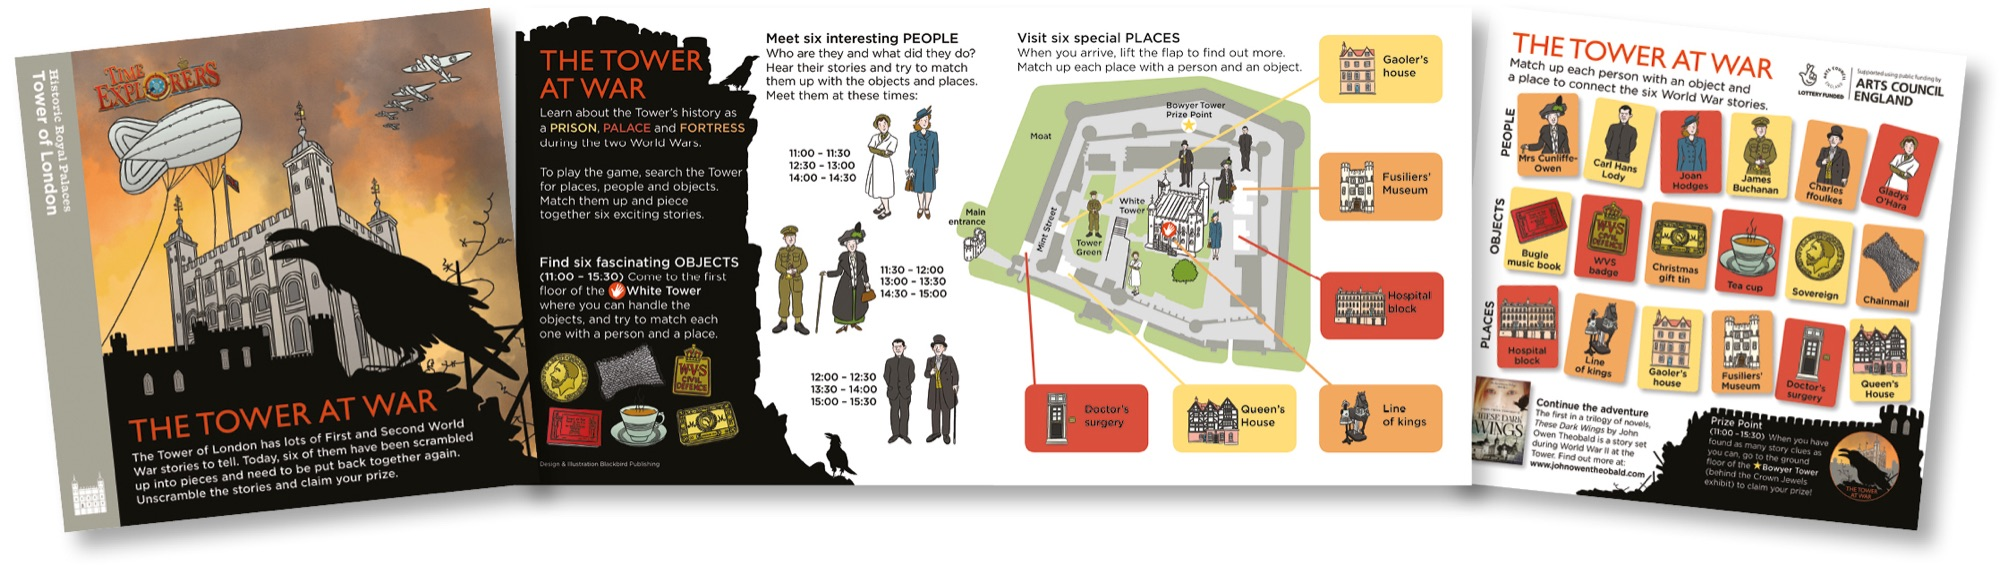 Blackbird Publishing Family Activity Trails Lift-the-flap Activity Game Leaflet Historic Royal Palaces Tower of London